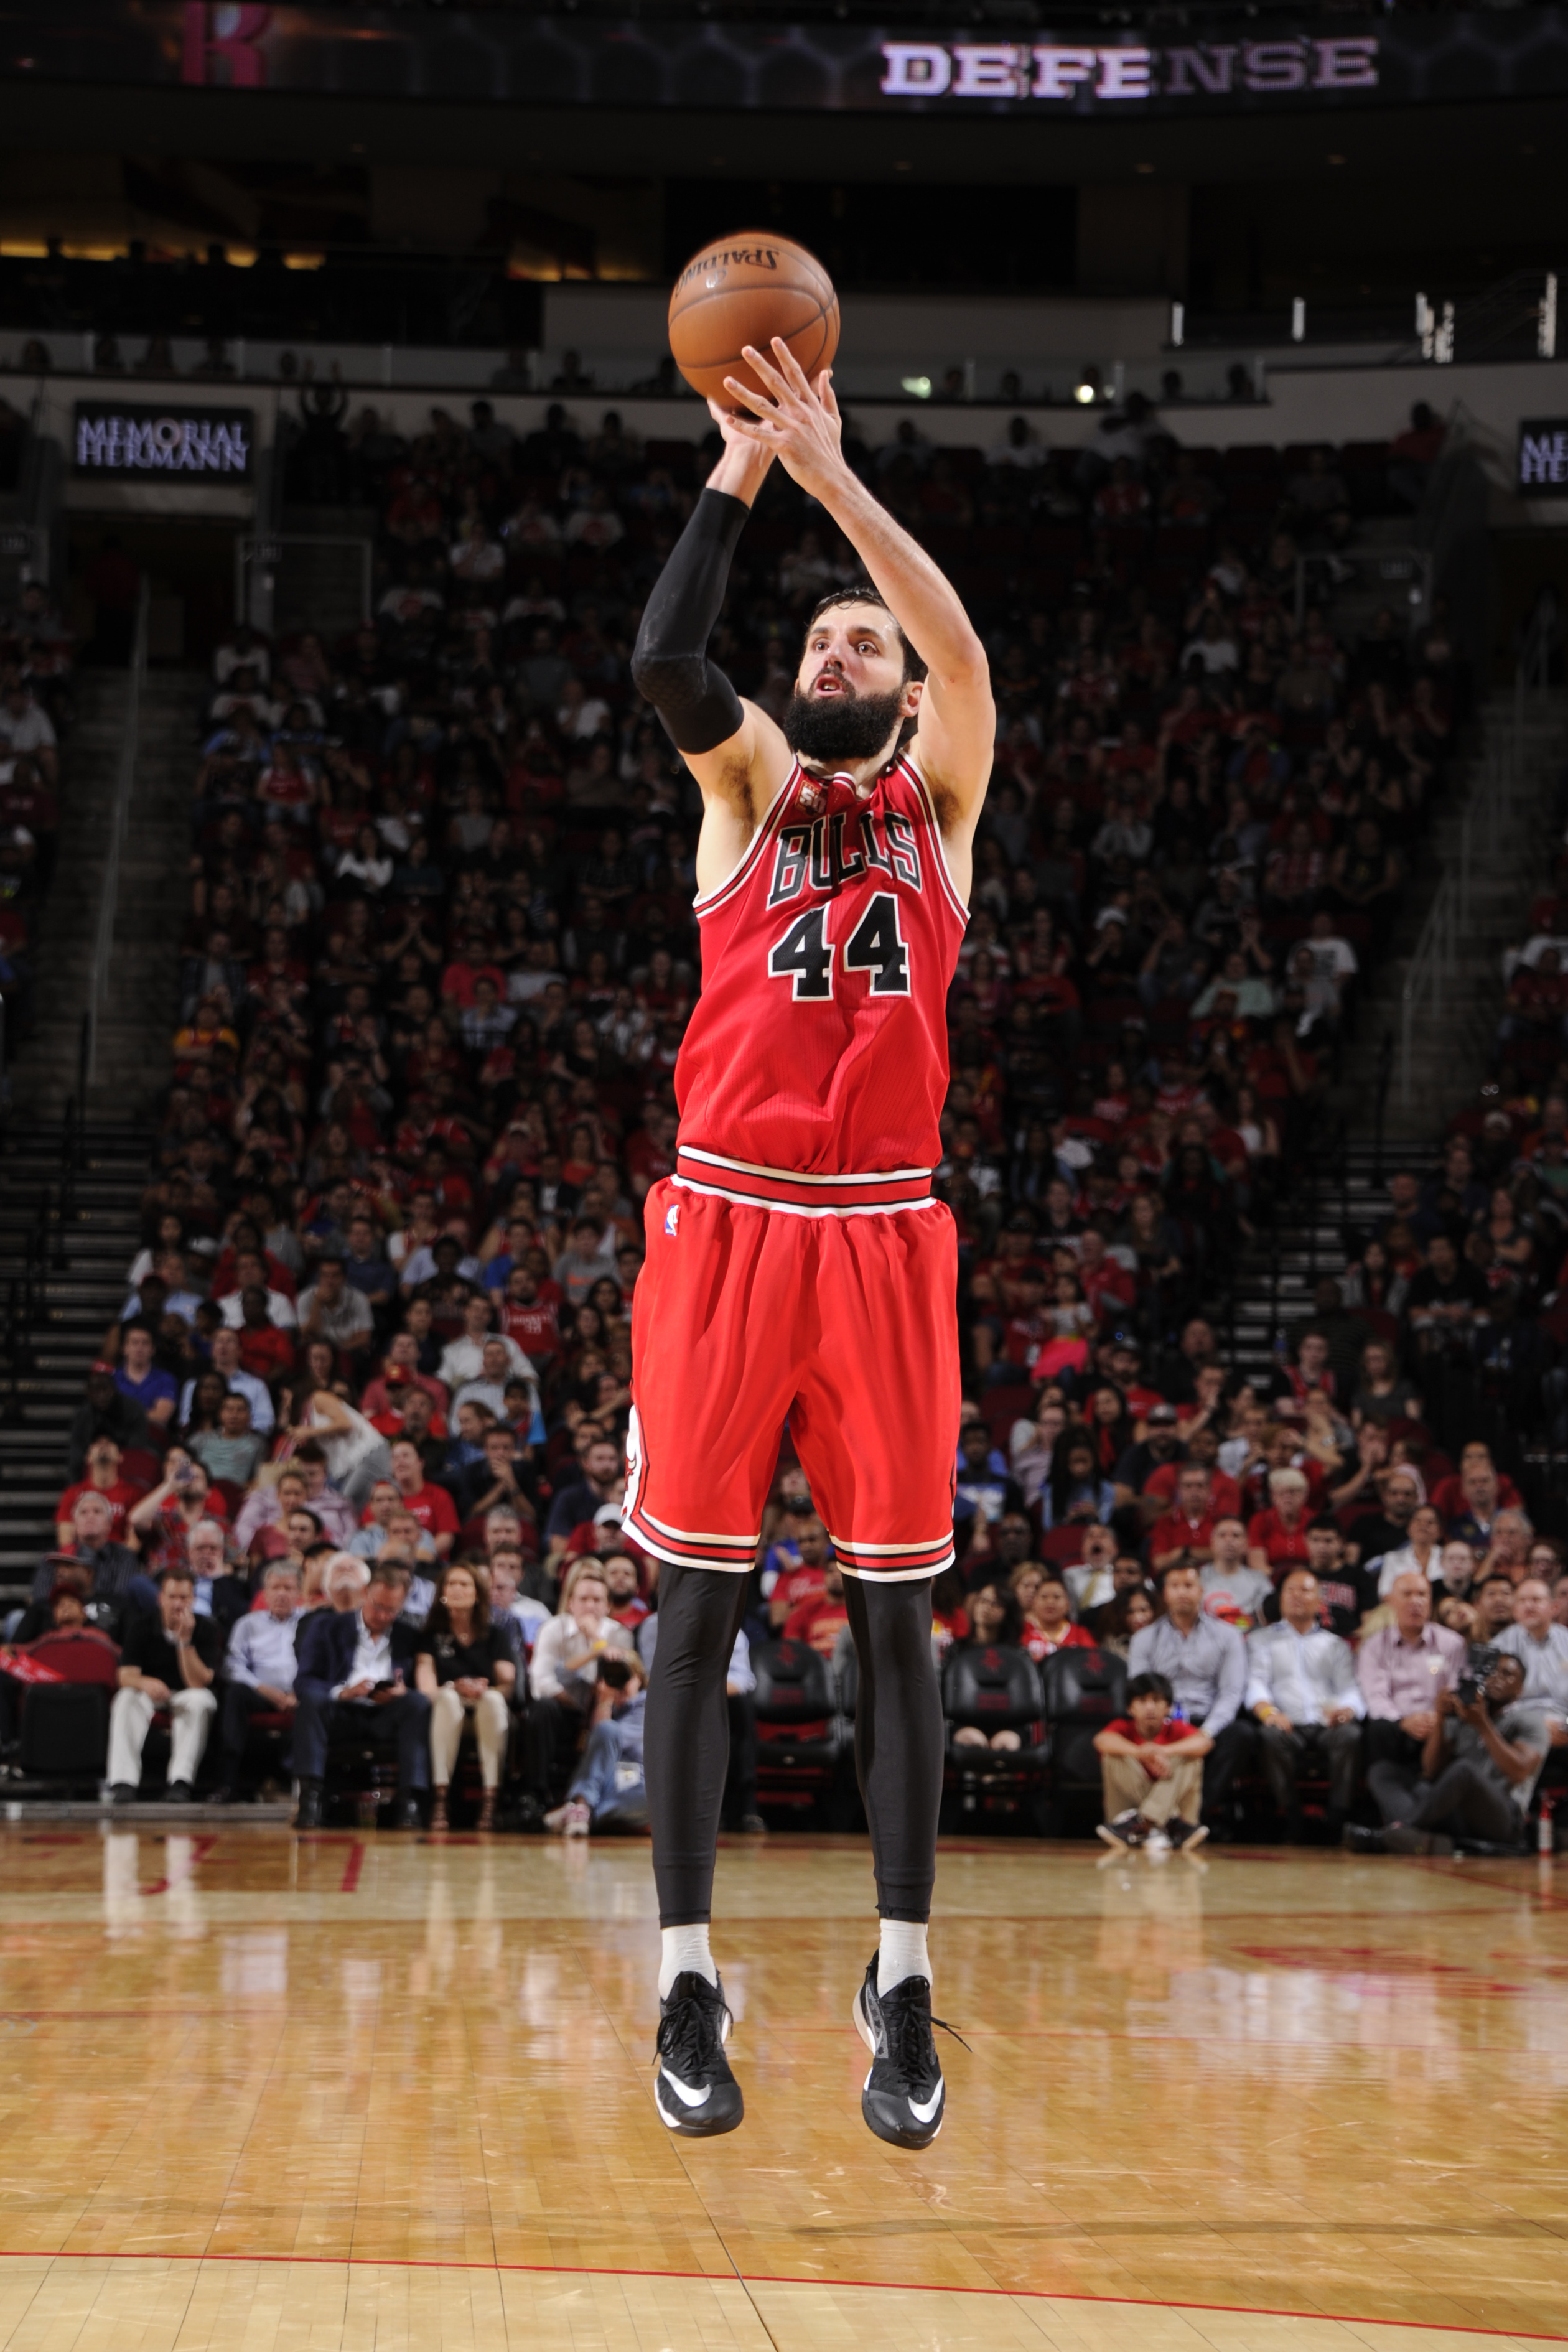 HOUSTON, TX - MARCH 31:  Nikola Mirotic #44 of the Chicago Bulls shoots against the Houston Rockets on March 31, 2016 at the Toyota Center in Houston, Texas. (Photo by Bill Baptist/NBAE via Getty Images)